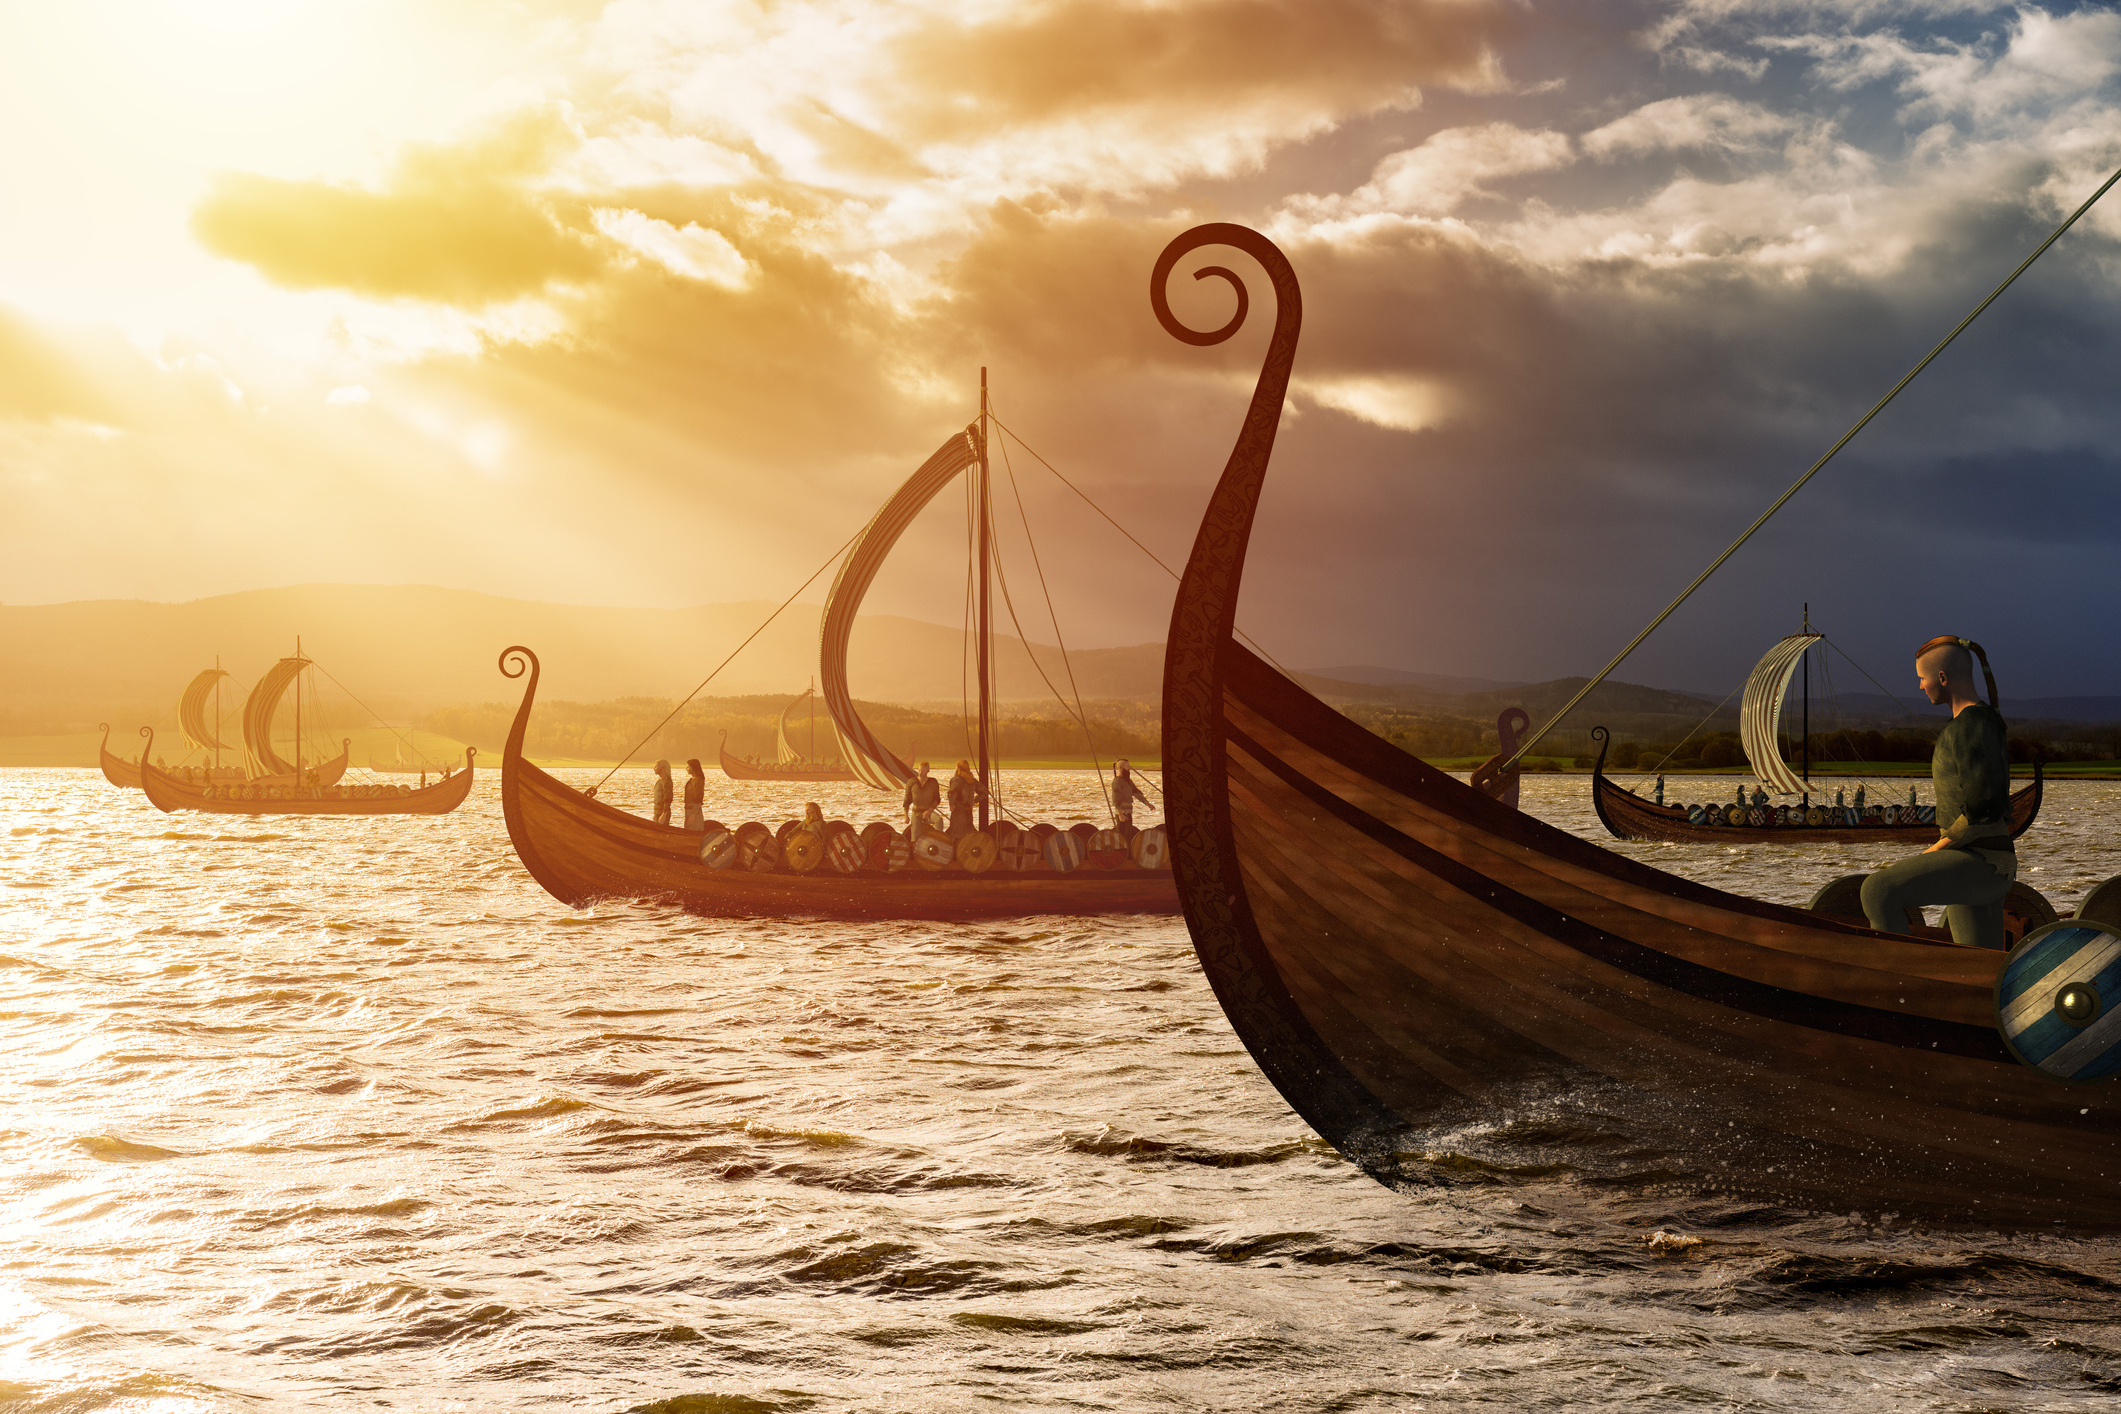 viking-ships-on-the-water-under-the-sunlight-and-dark-stormjpg